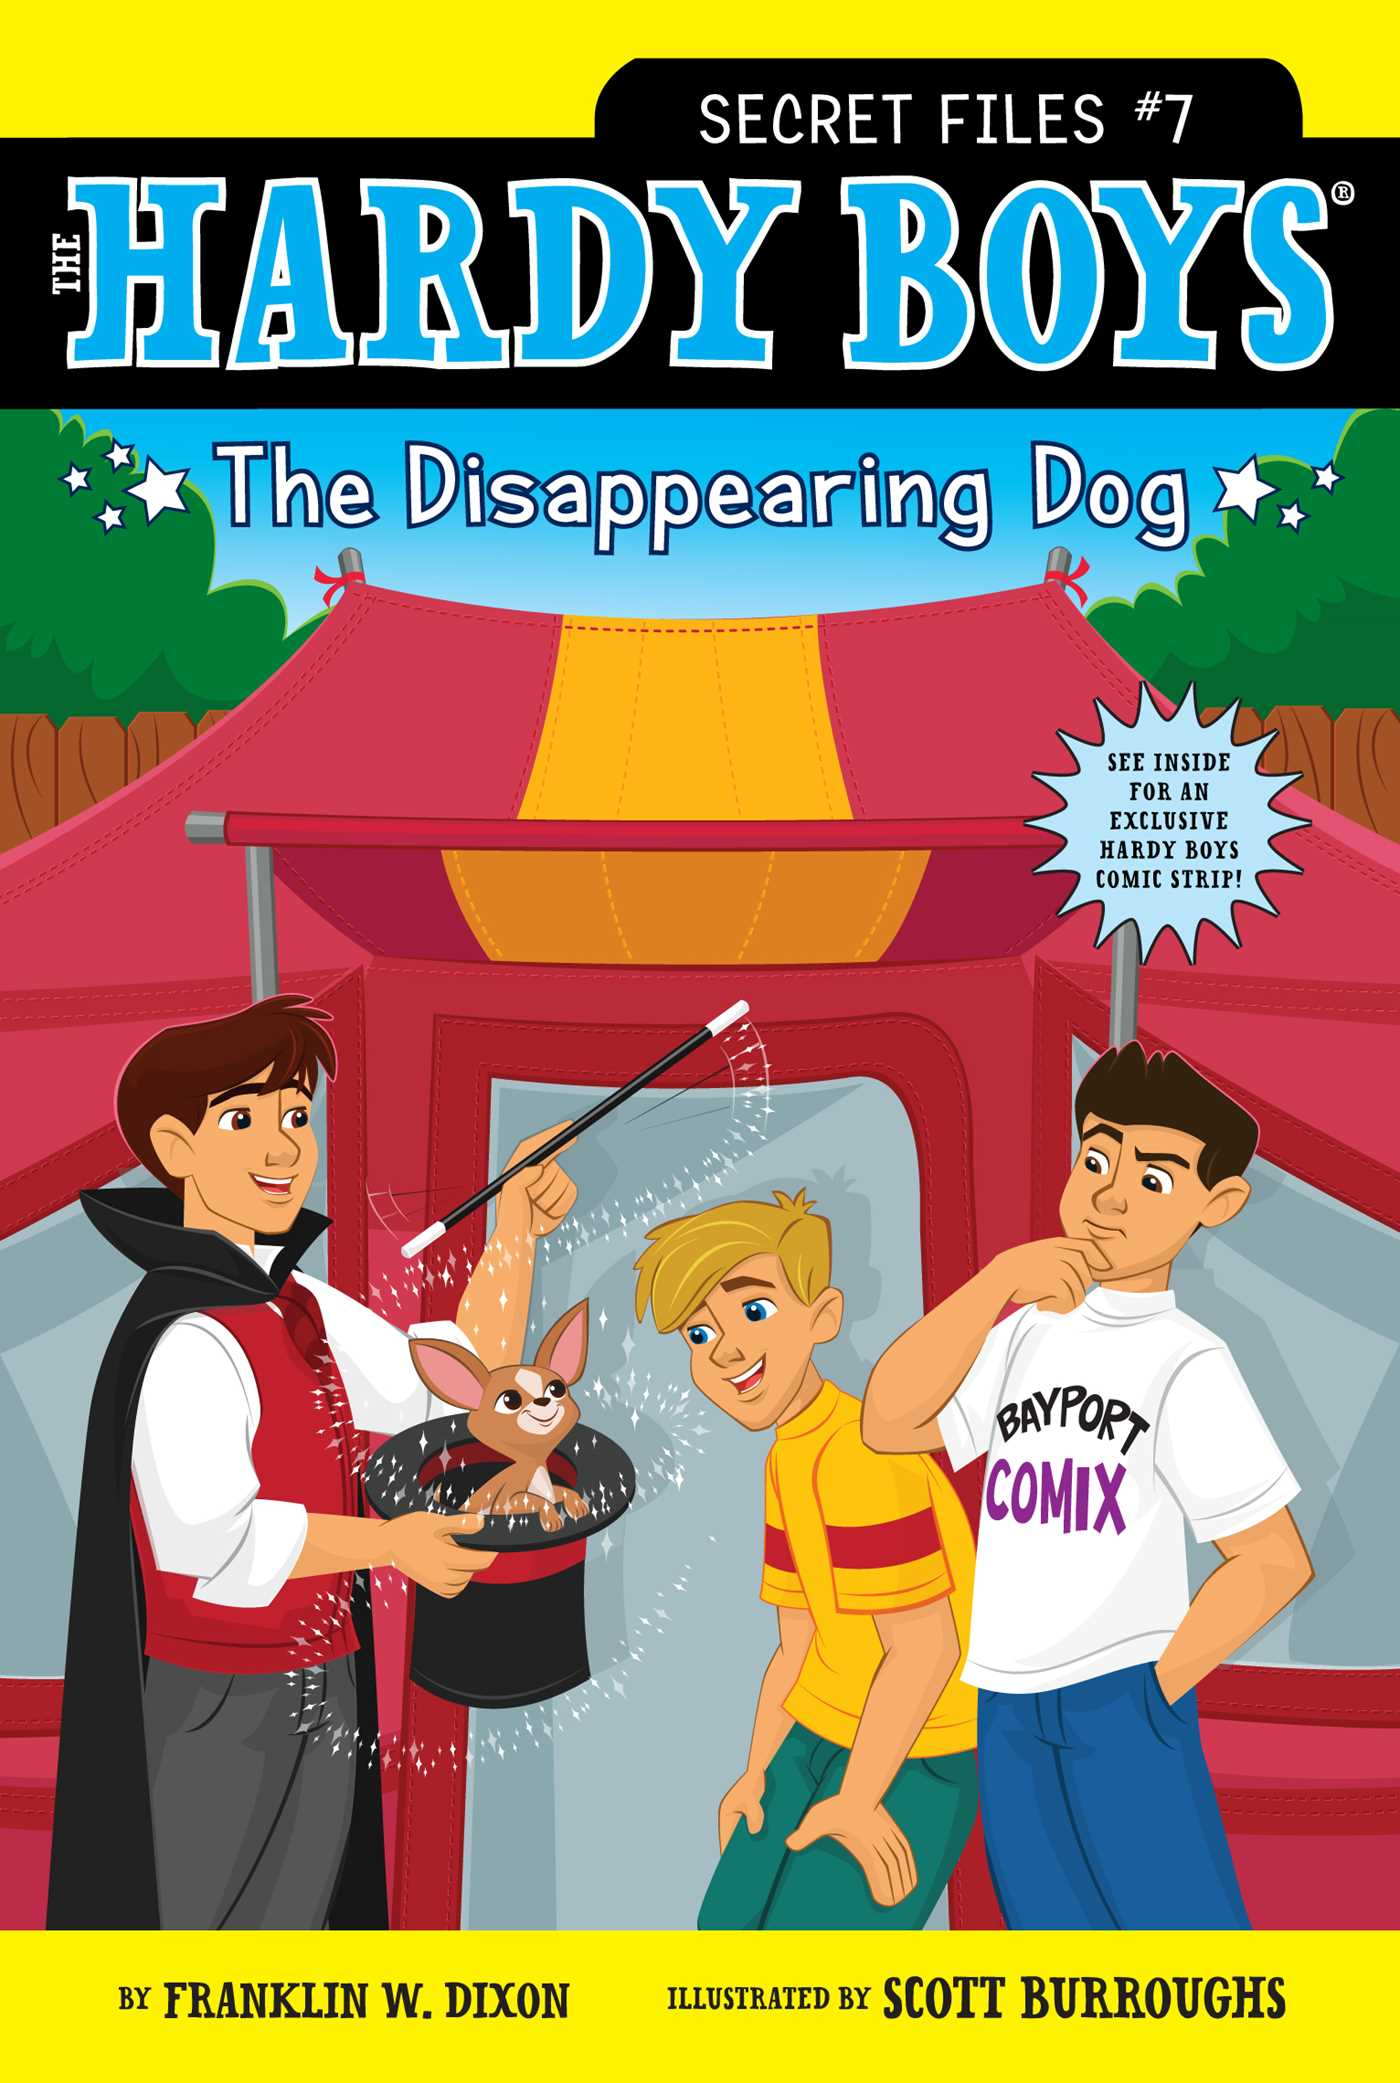 The disappearing dog 9781442423152 hr